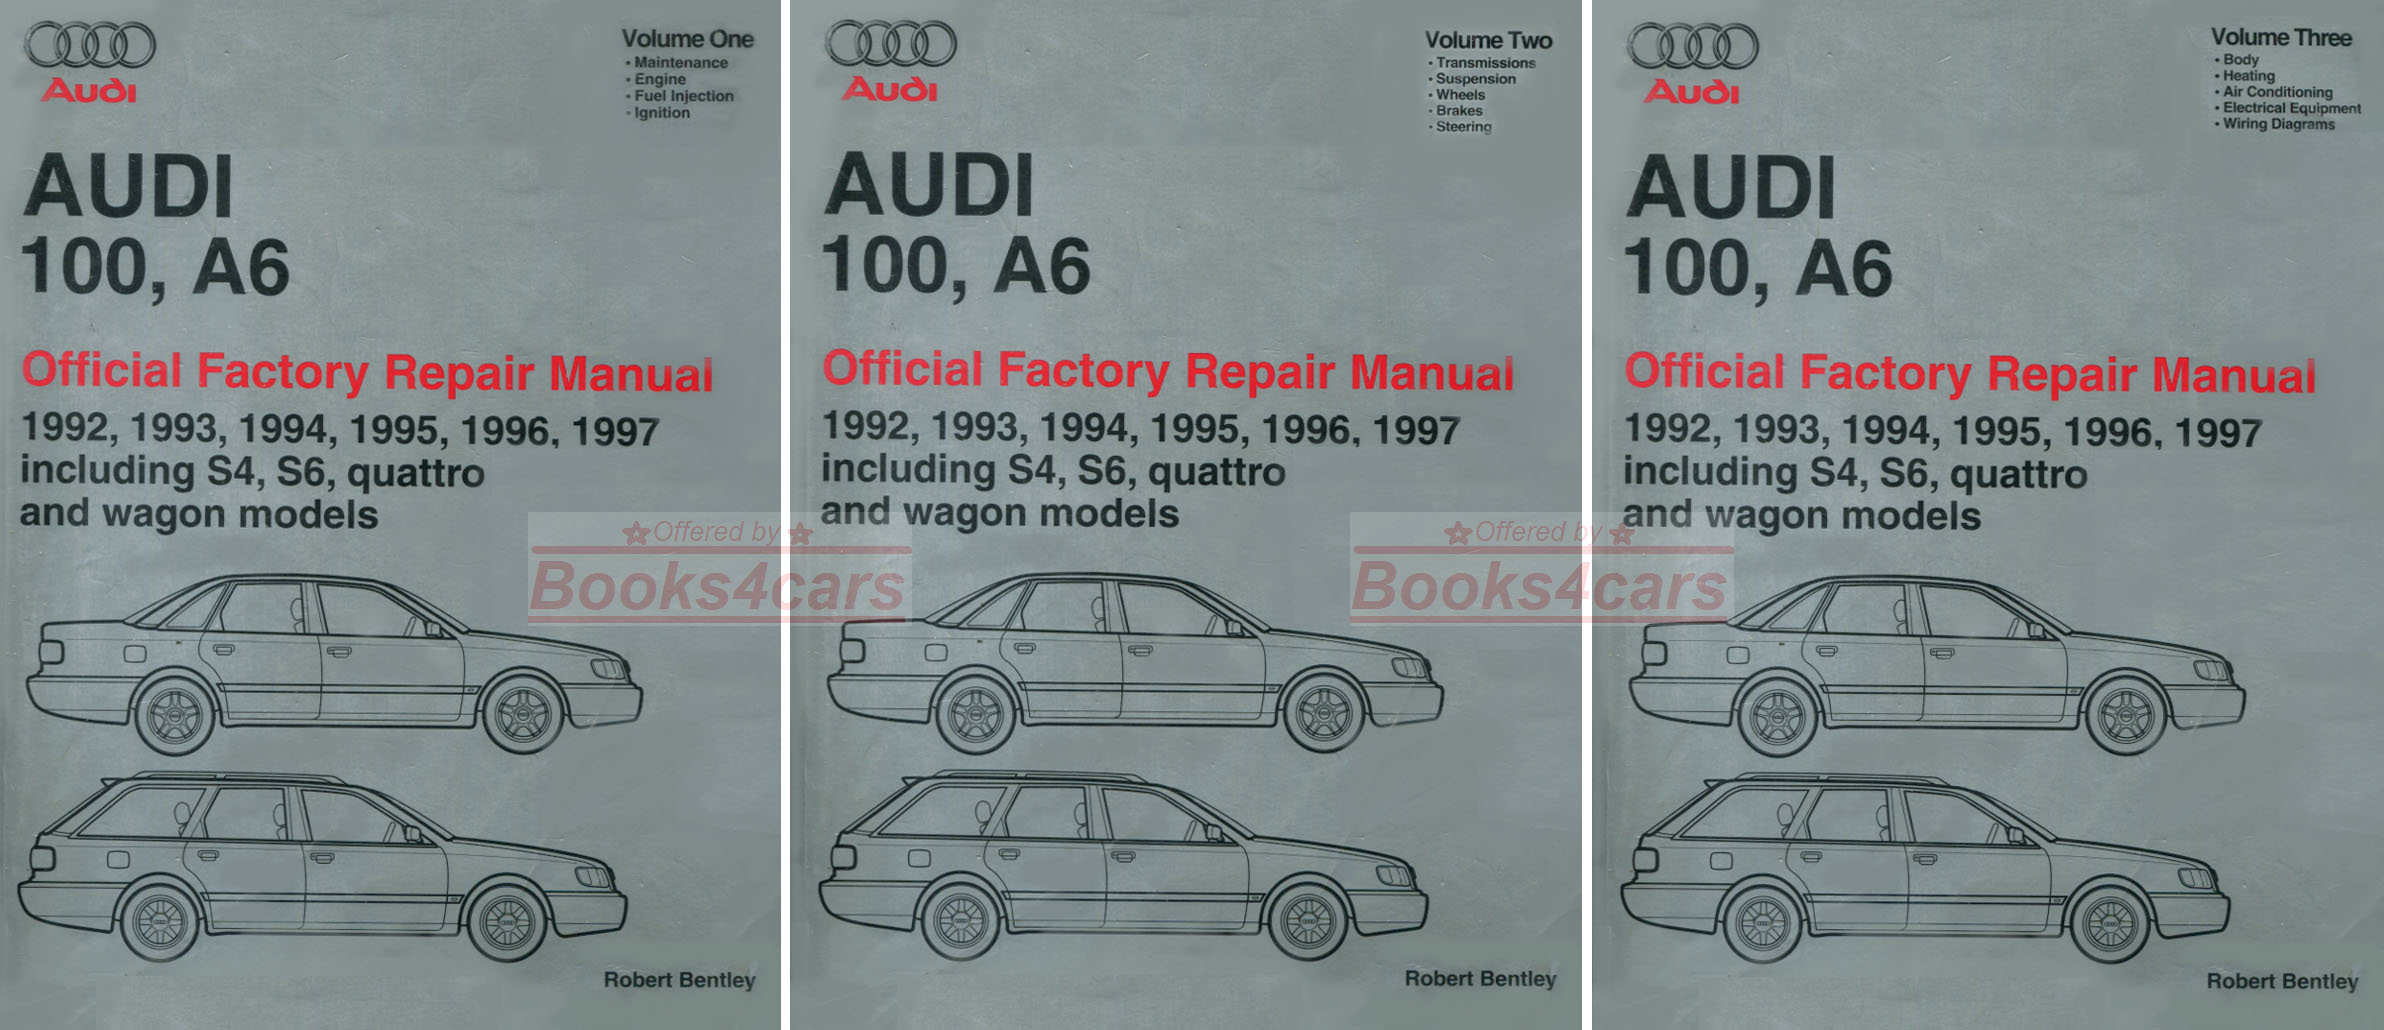 1998 Audi A6 Quattro Engine Diagram Engine Car Parts And Component